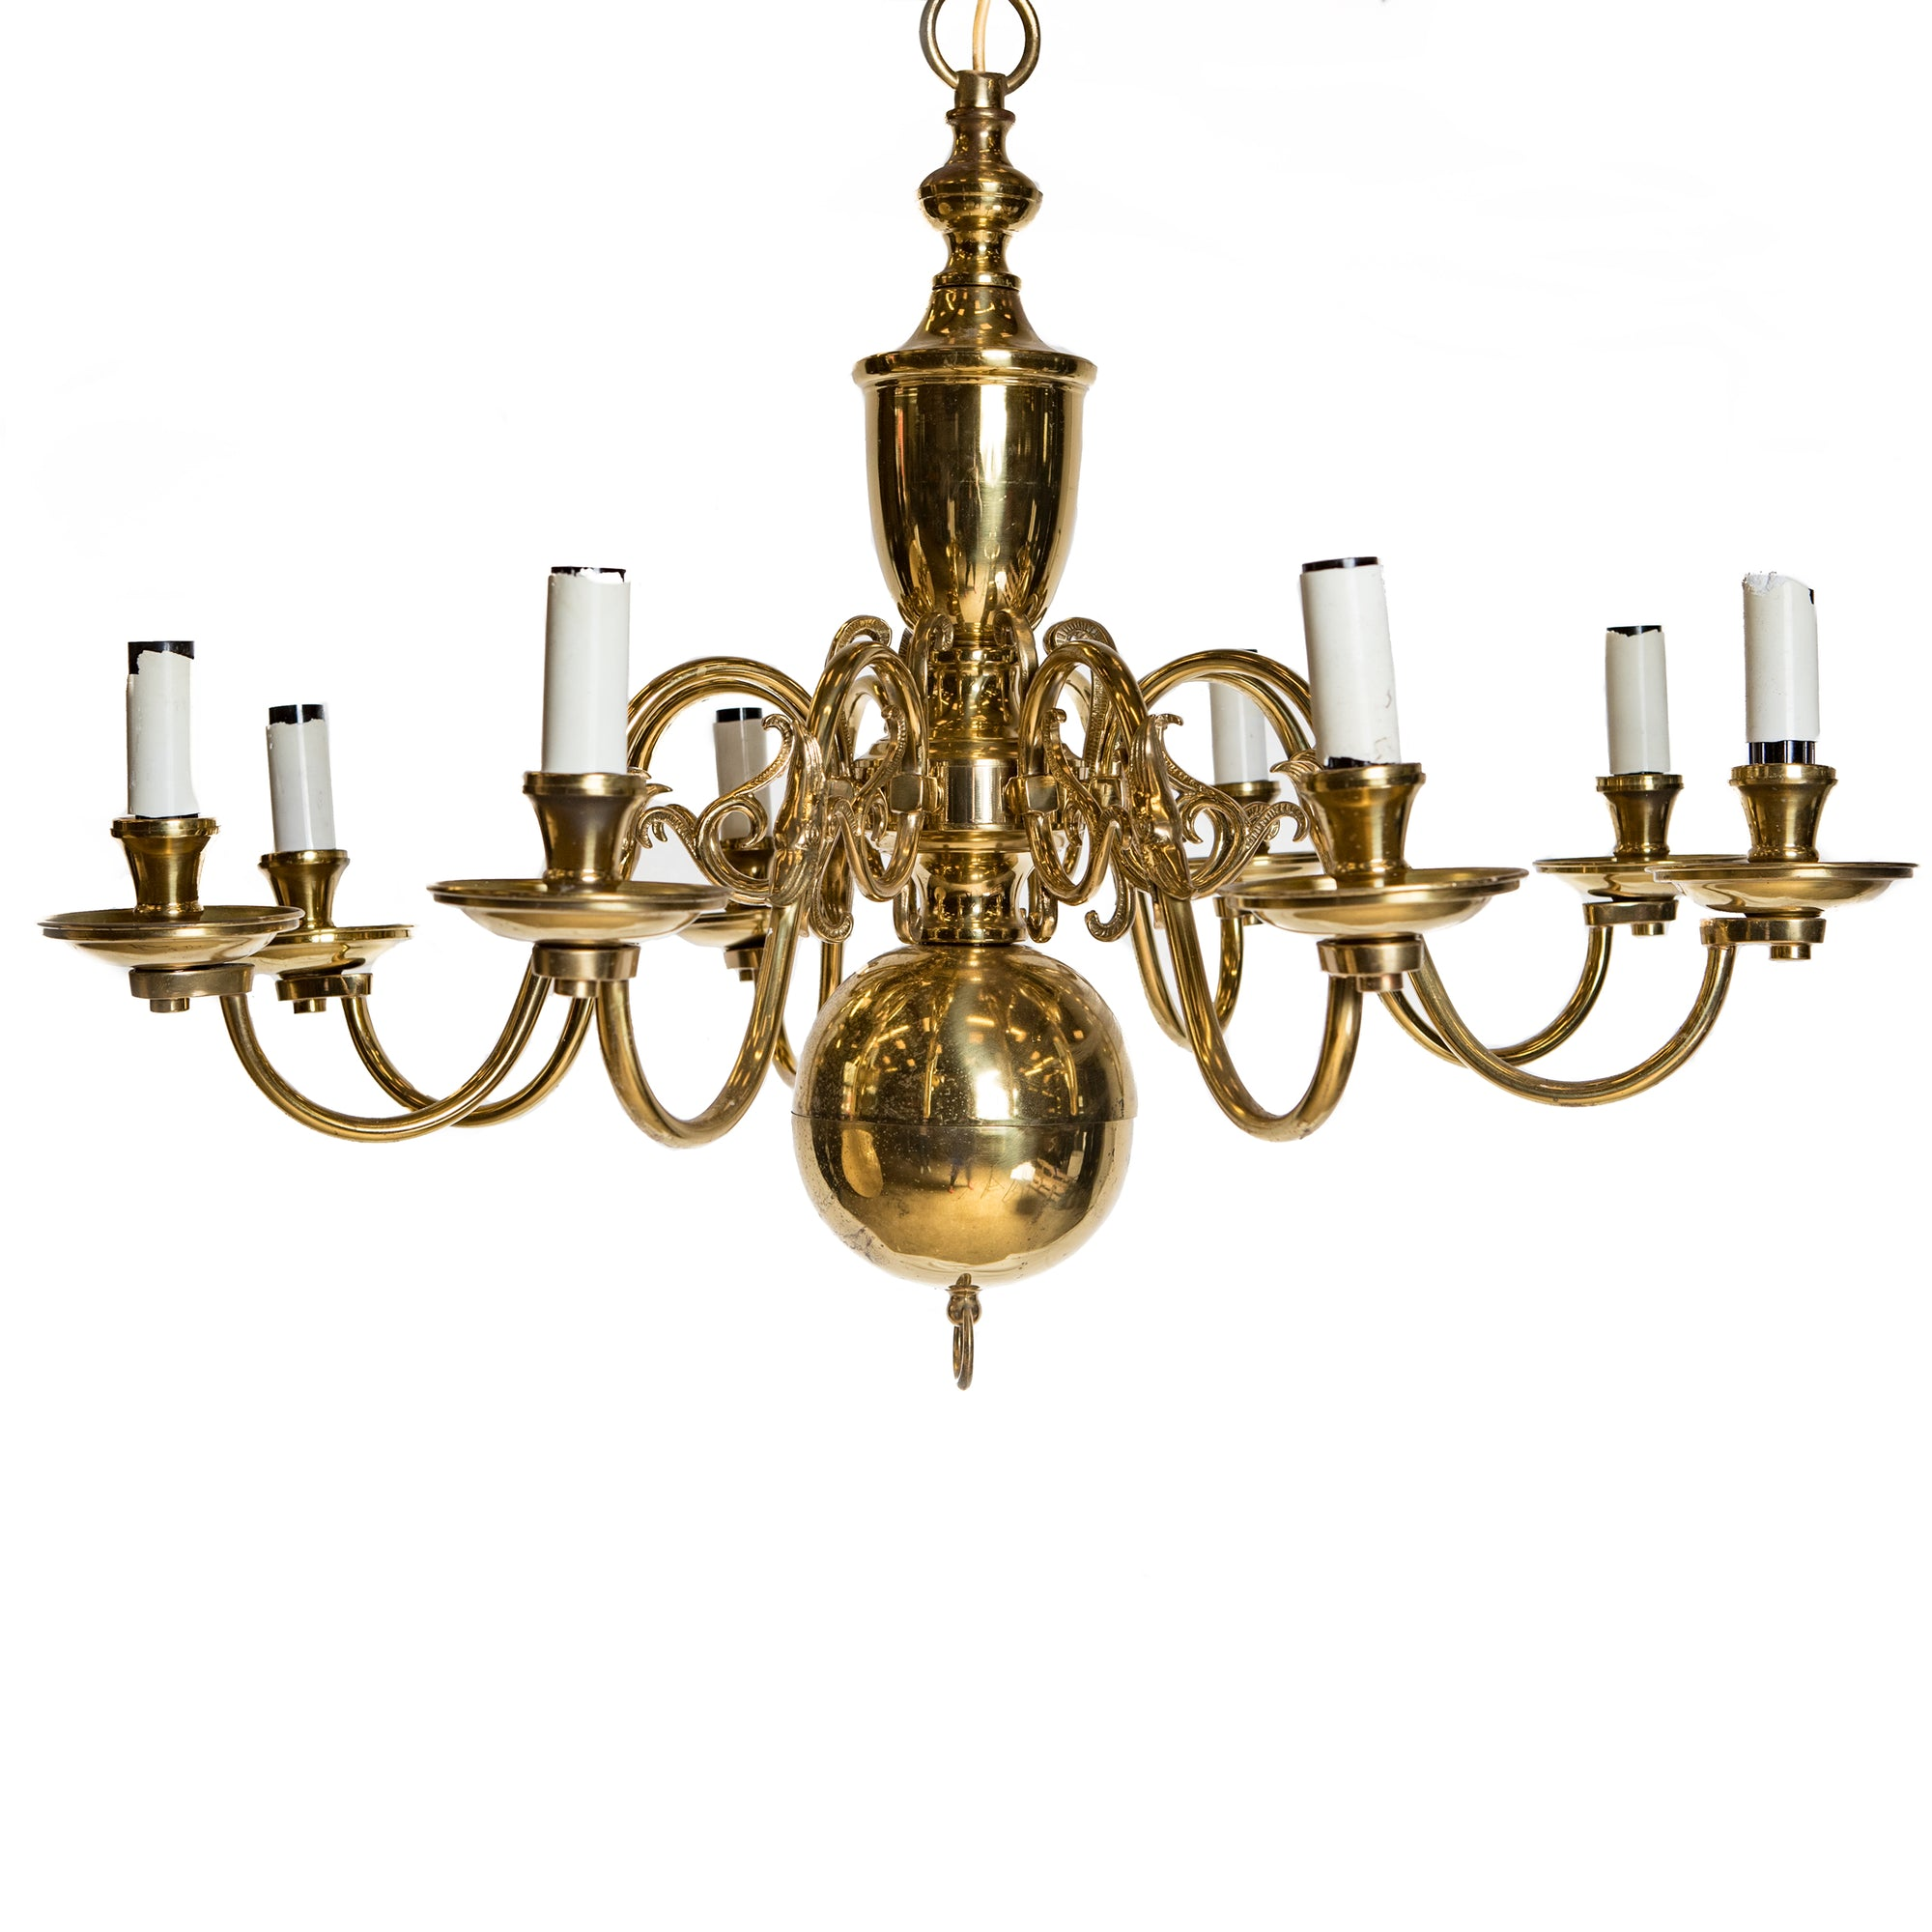 Reclaimed Antique Brass 8 Arm Chandelier - architectural-forum